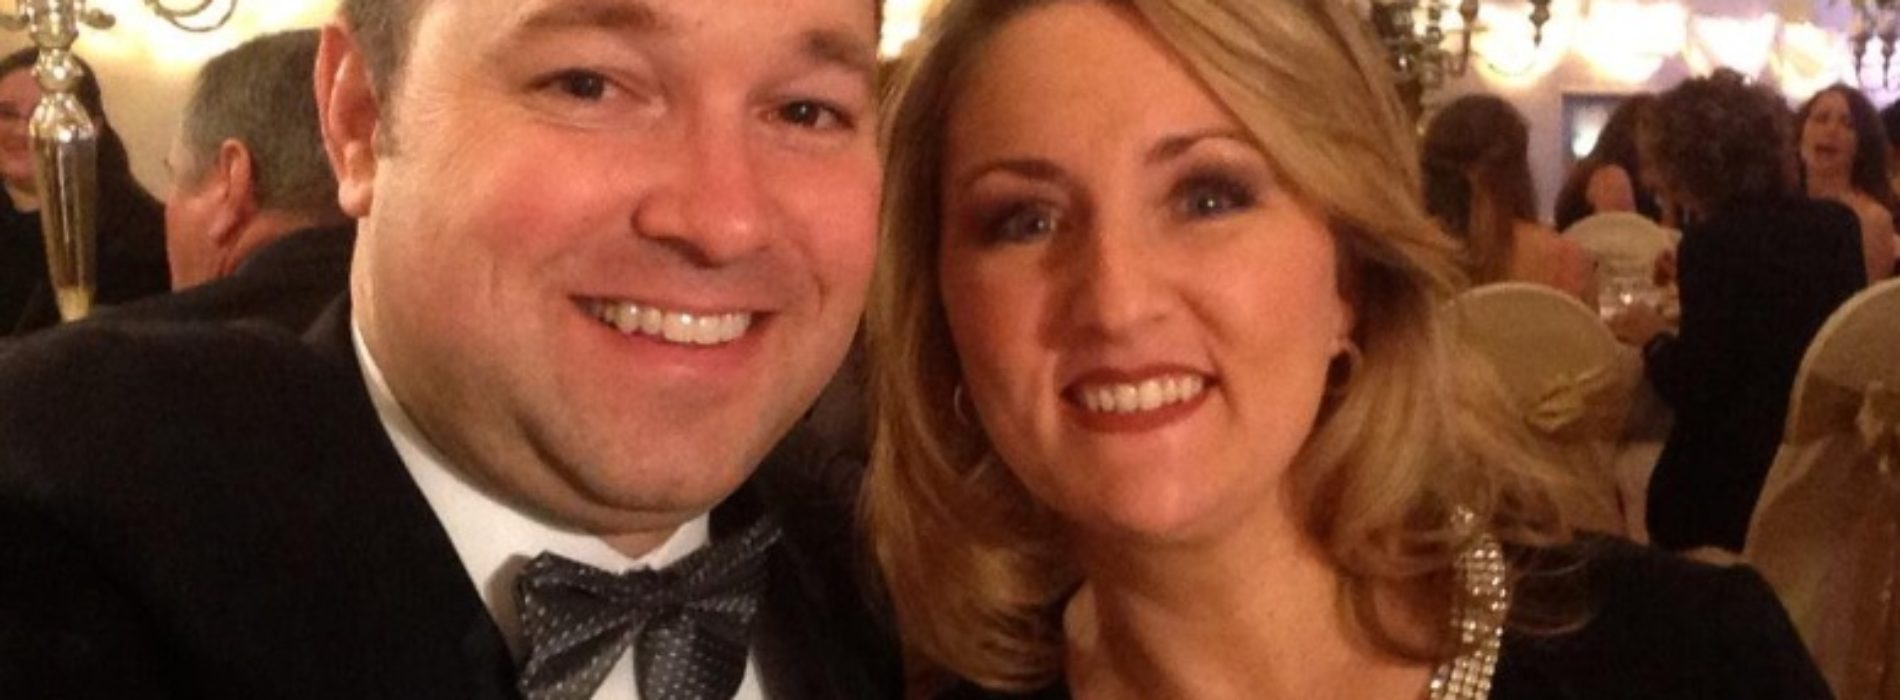 From the Poorhouse to the Penthouse: Christy & Marlin Stutzman go from -$84,496 to $1,554,500 Net Worth in their time in the U.S. Congress